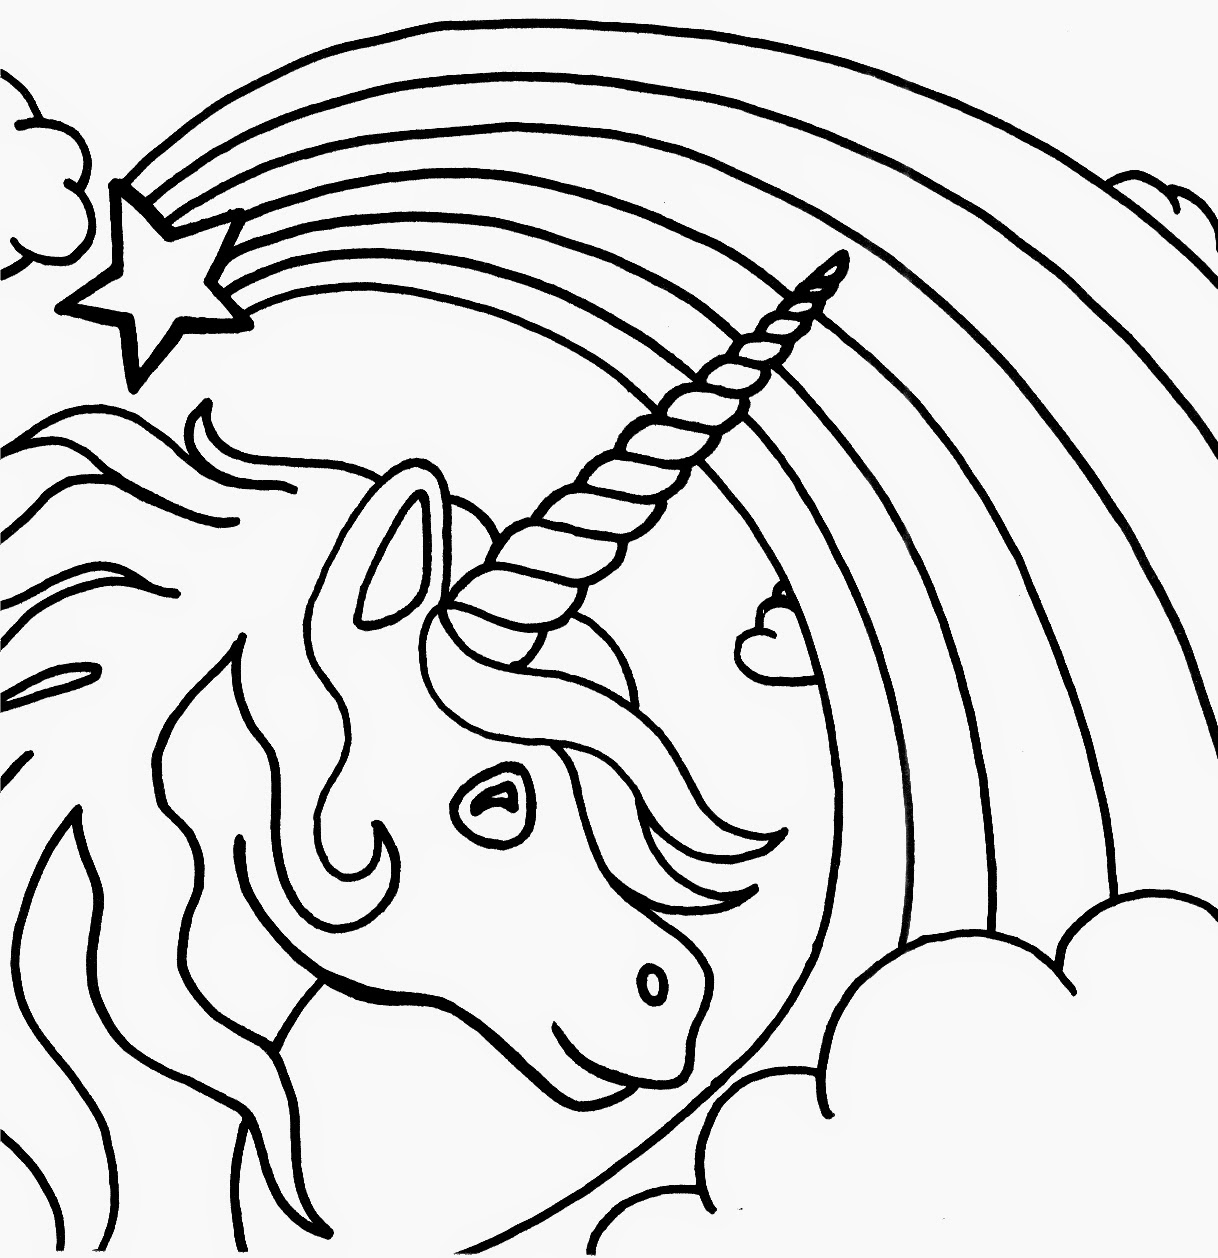 coloring pages of unicorns kindergarten unicorn colouring pages bestappsforkidscom pages coloring of unicorns